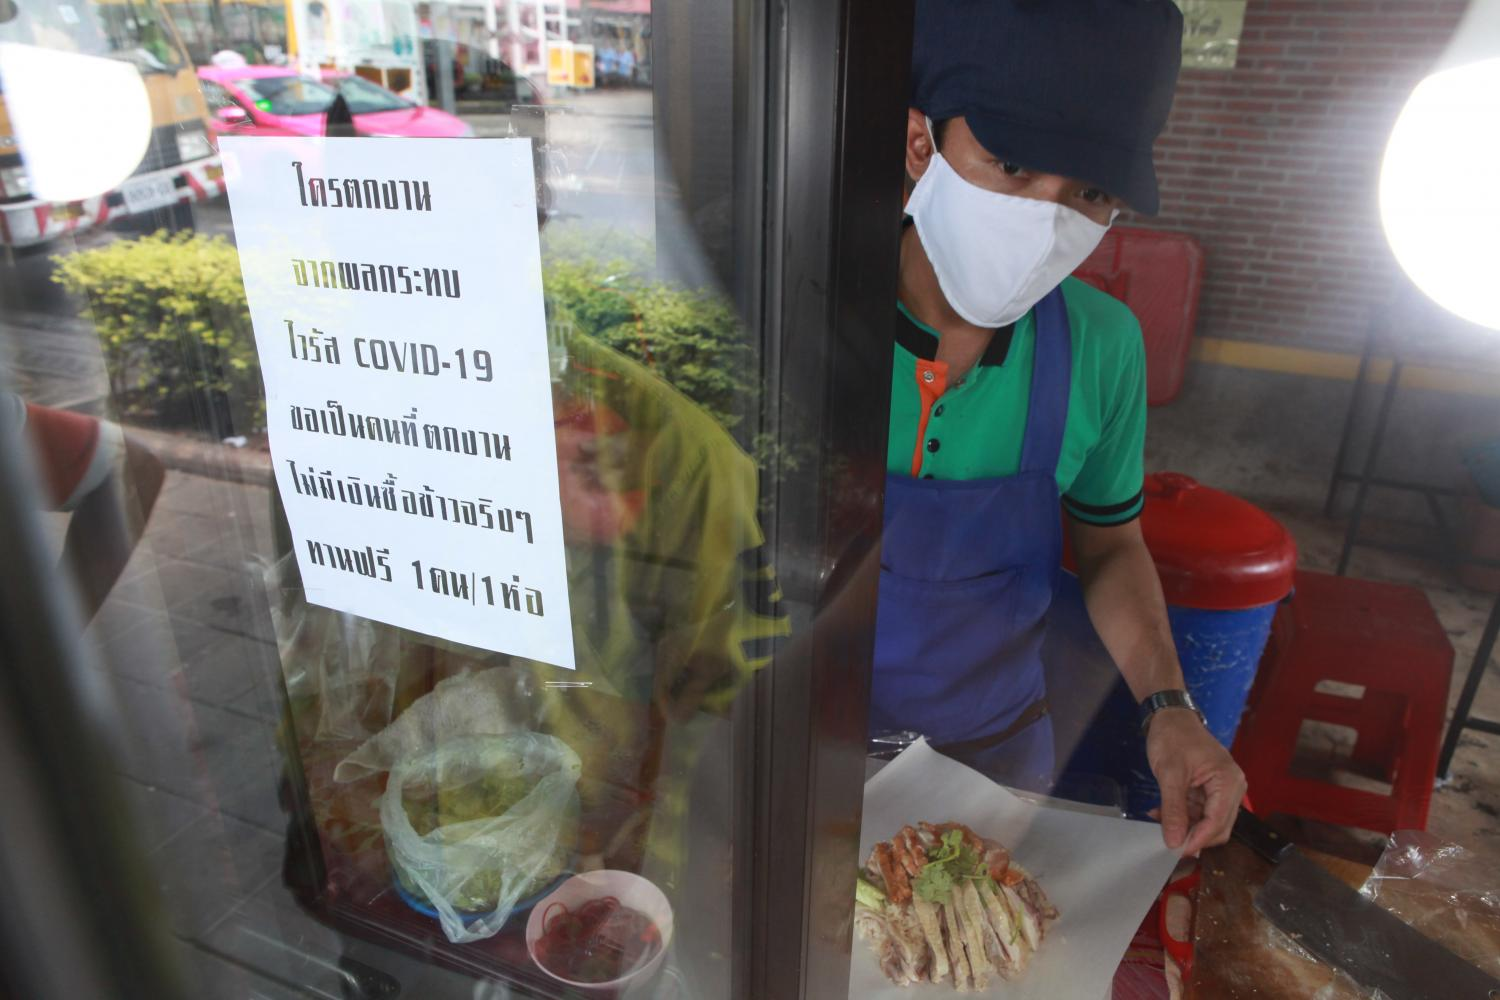 A vendor at an Oshin eatery chain wraps chicken and rice for a customer with a message put up on the stall front offering a free meal to anyone made jobless as a result of the Covid-19 outbreak.